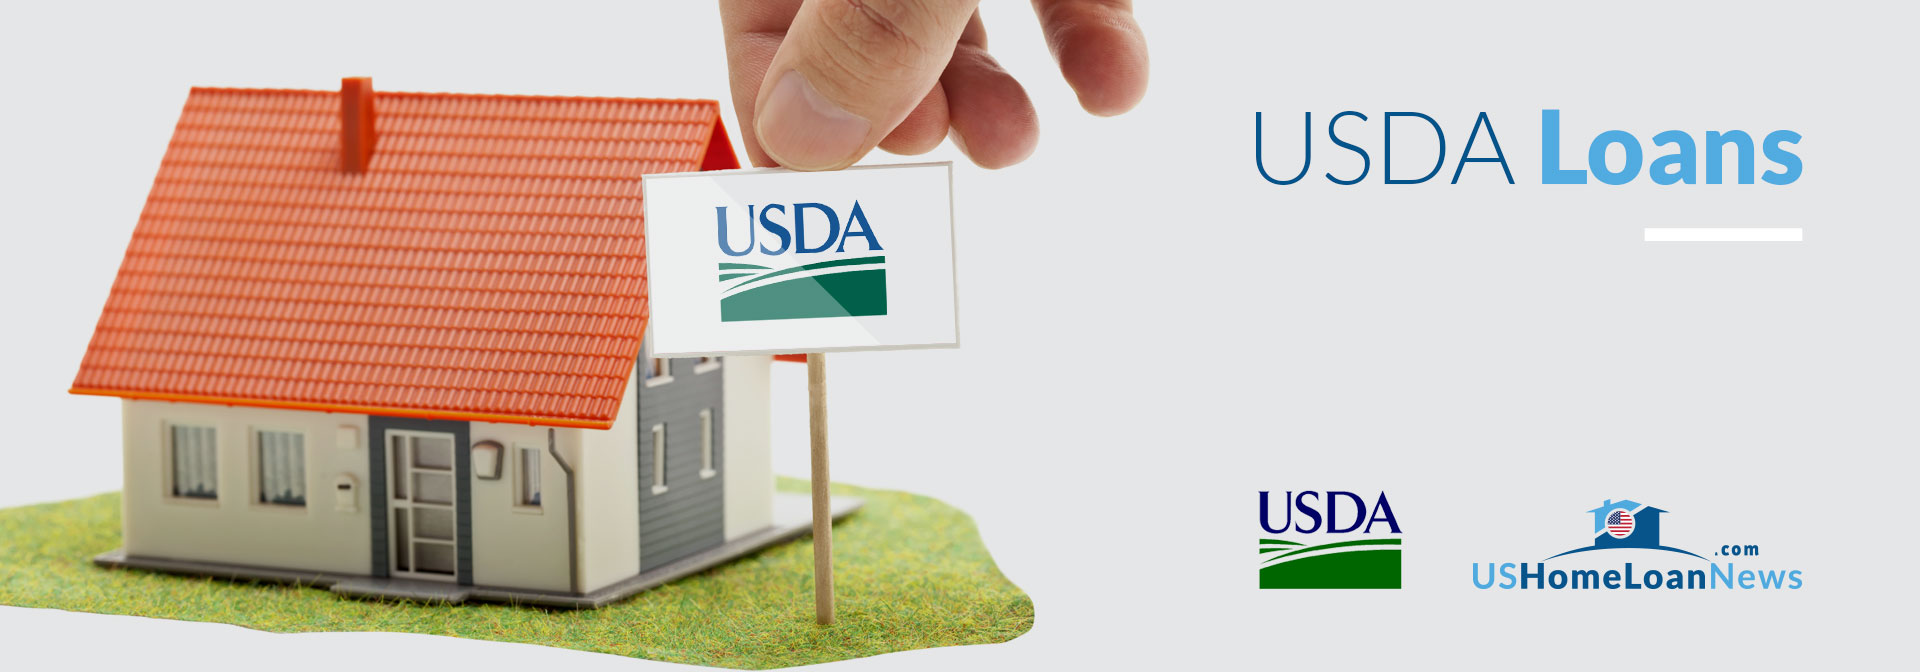 USDA Loans for Home Owners by US Home Loan News